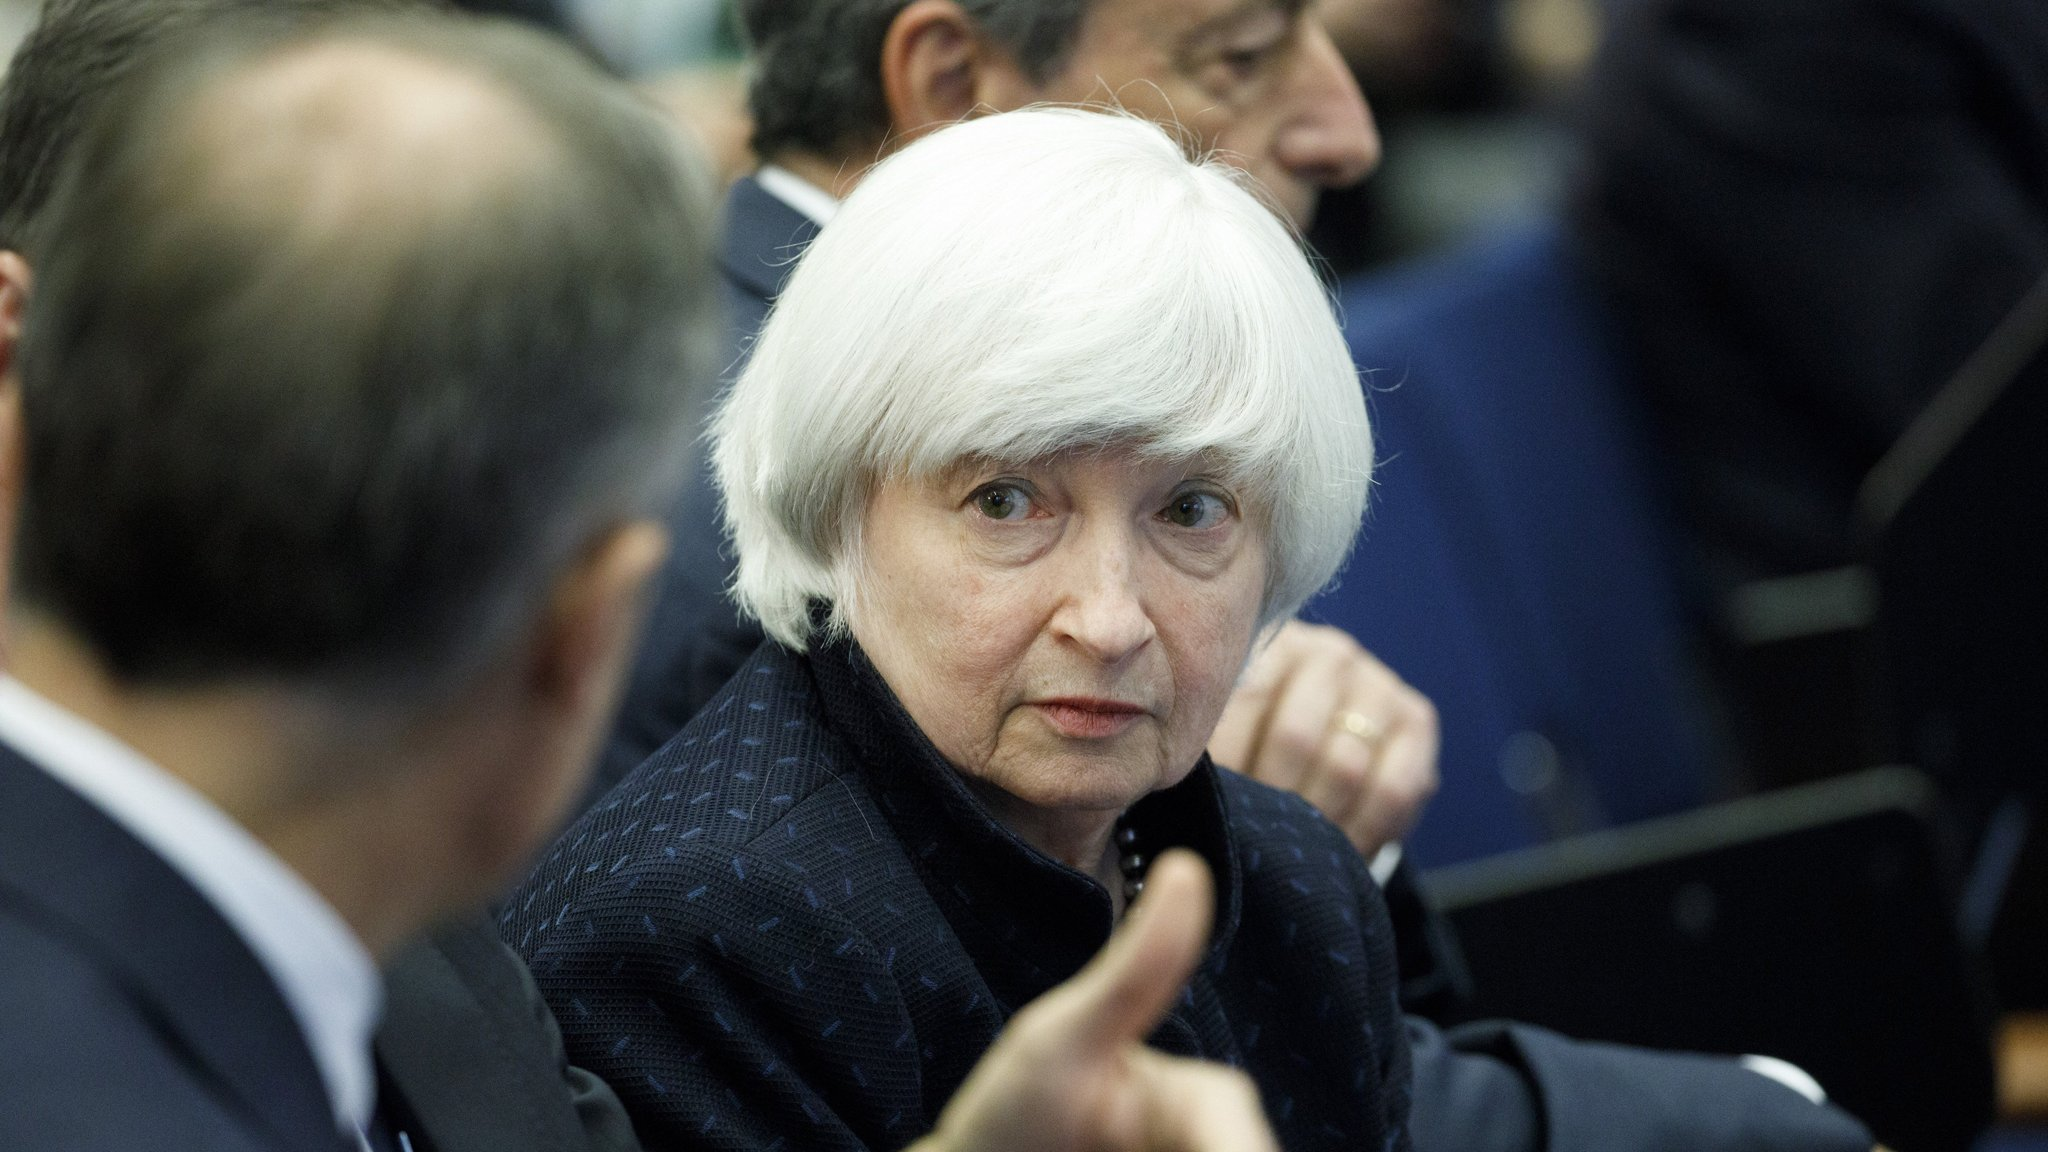 The unfortunate exit of an exemplary Fed chair